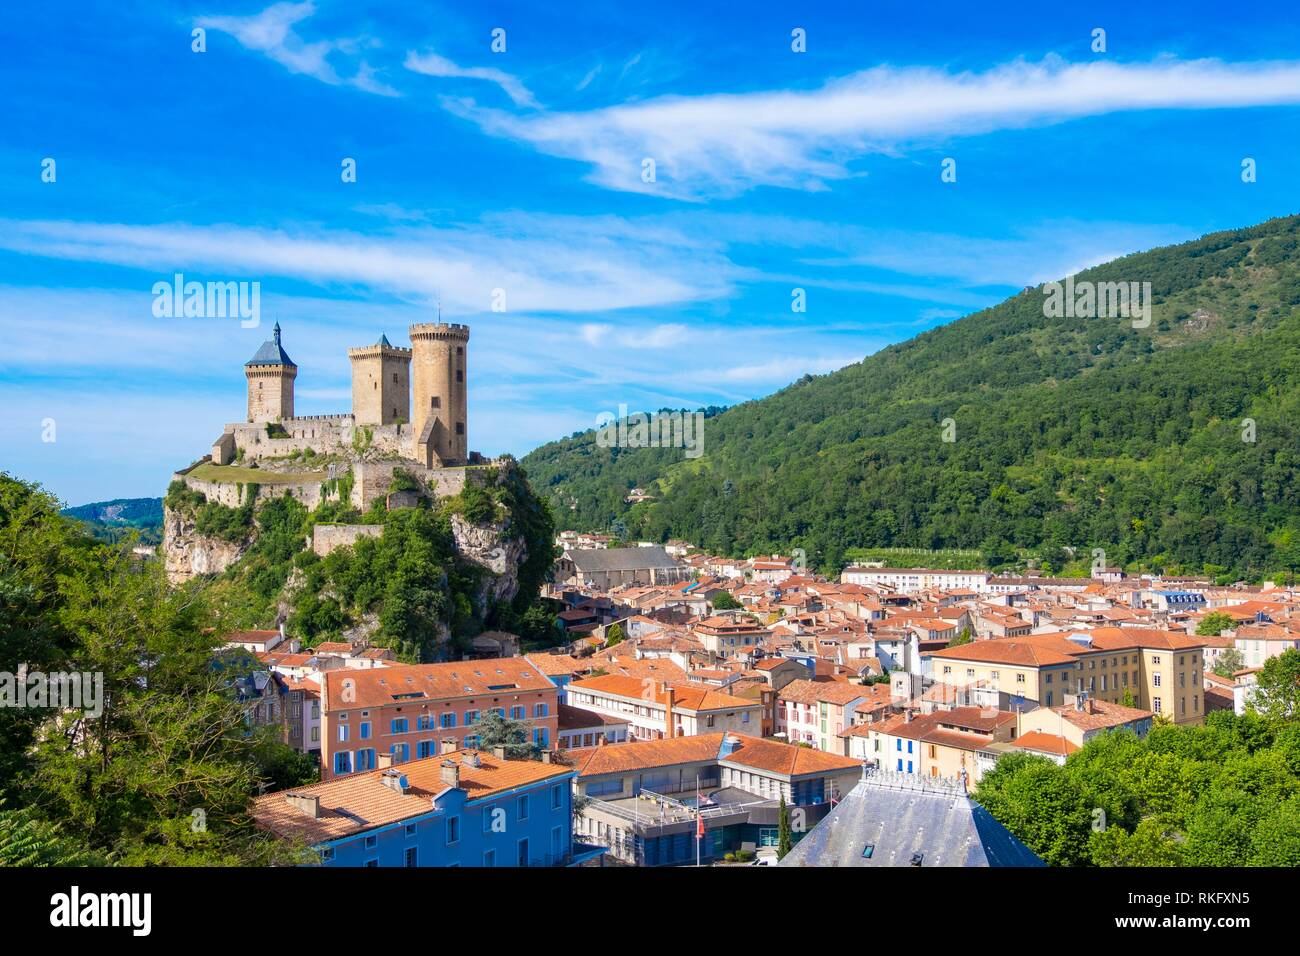 France, Occitanie,Ariege, the town of Foix. Stock Photo